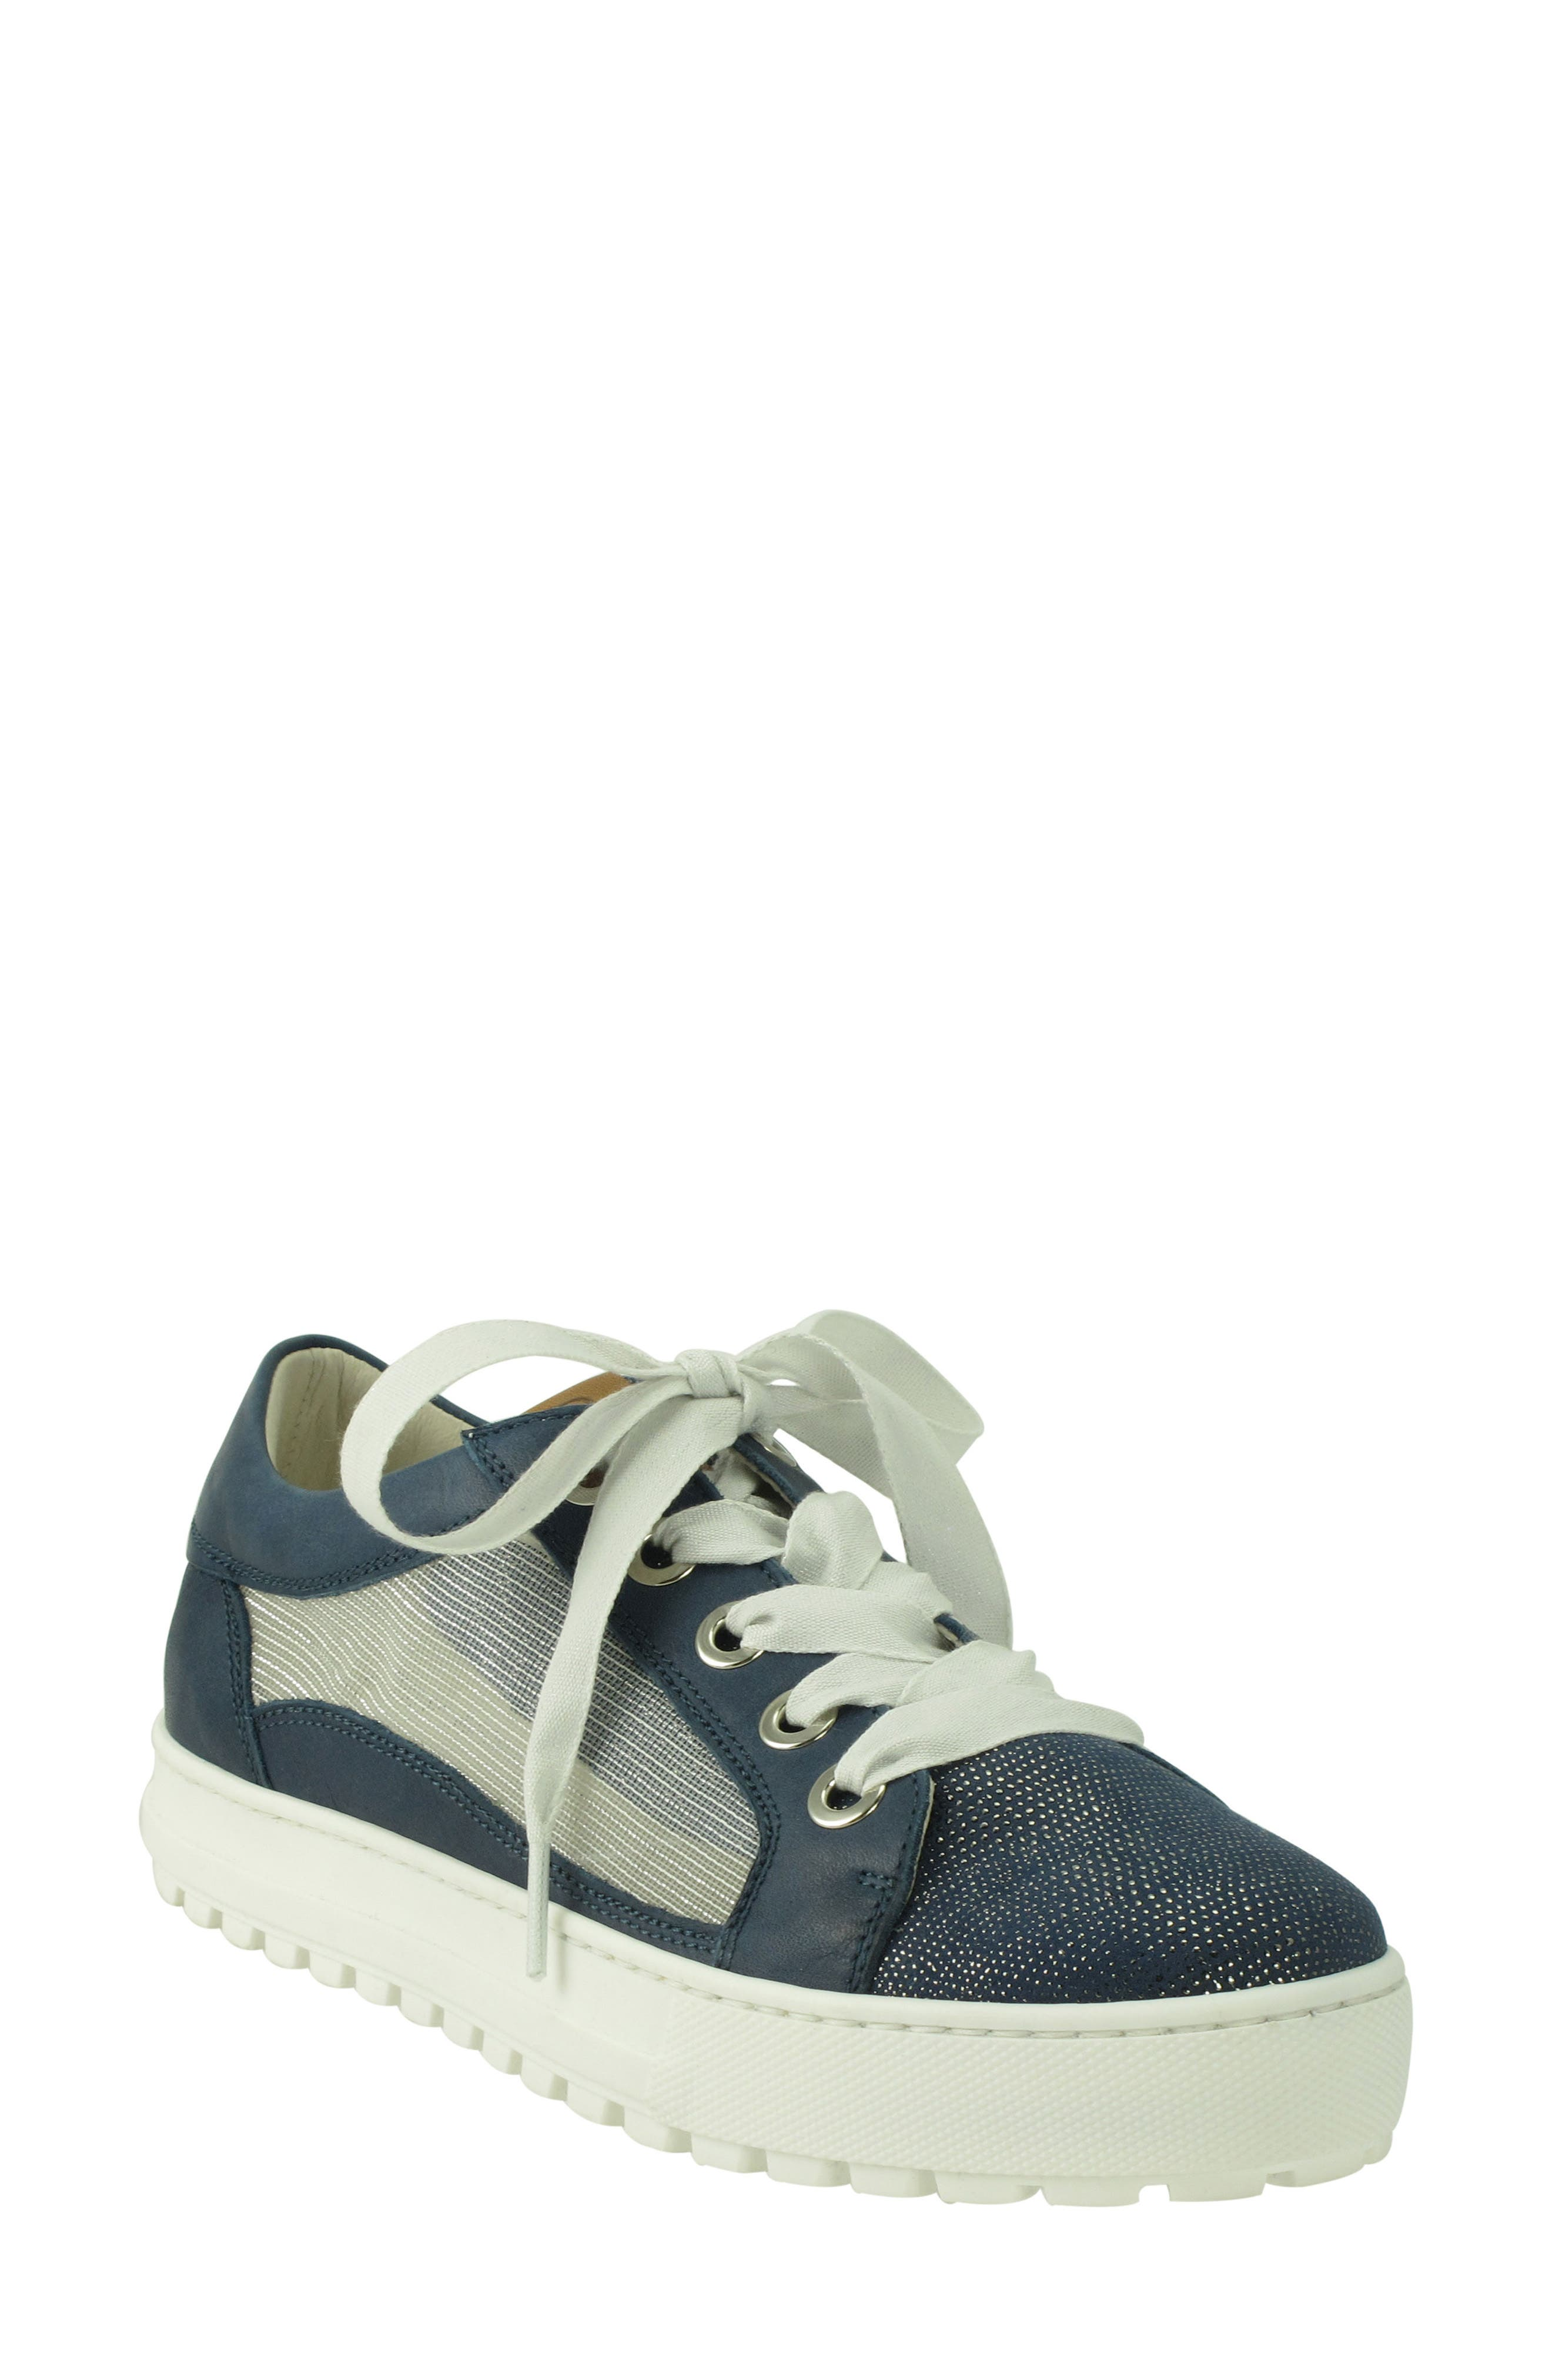 Layton Sneaker,                             Main thumbnail 1, color,                             Jeans Leather